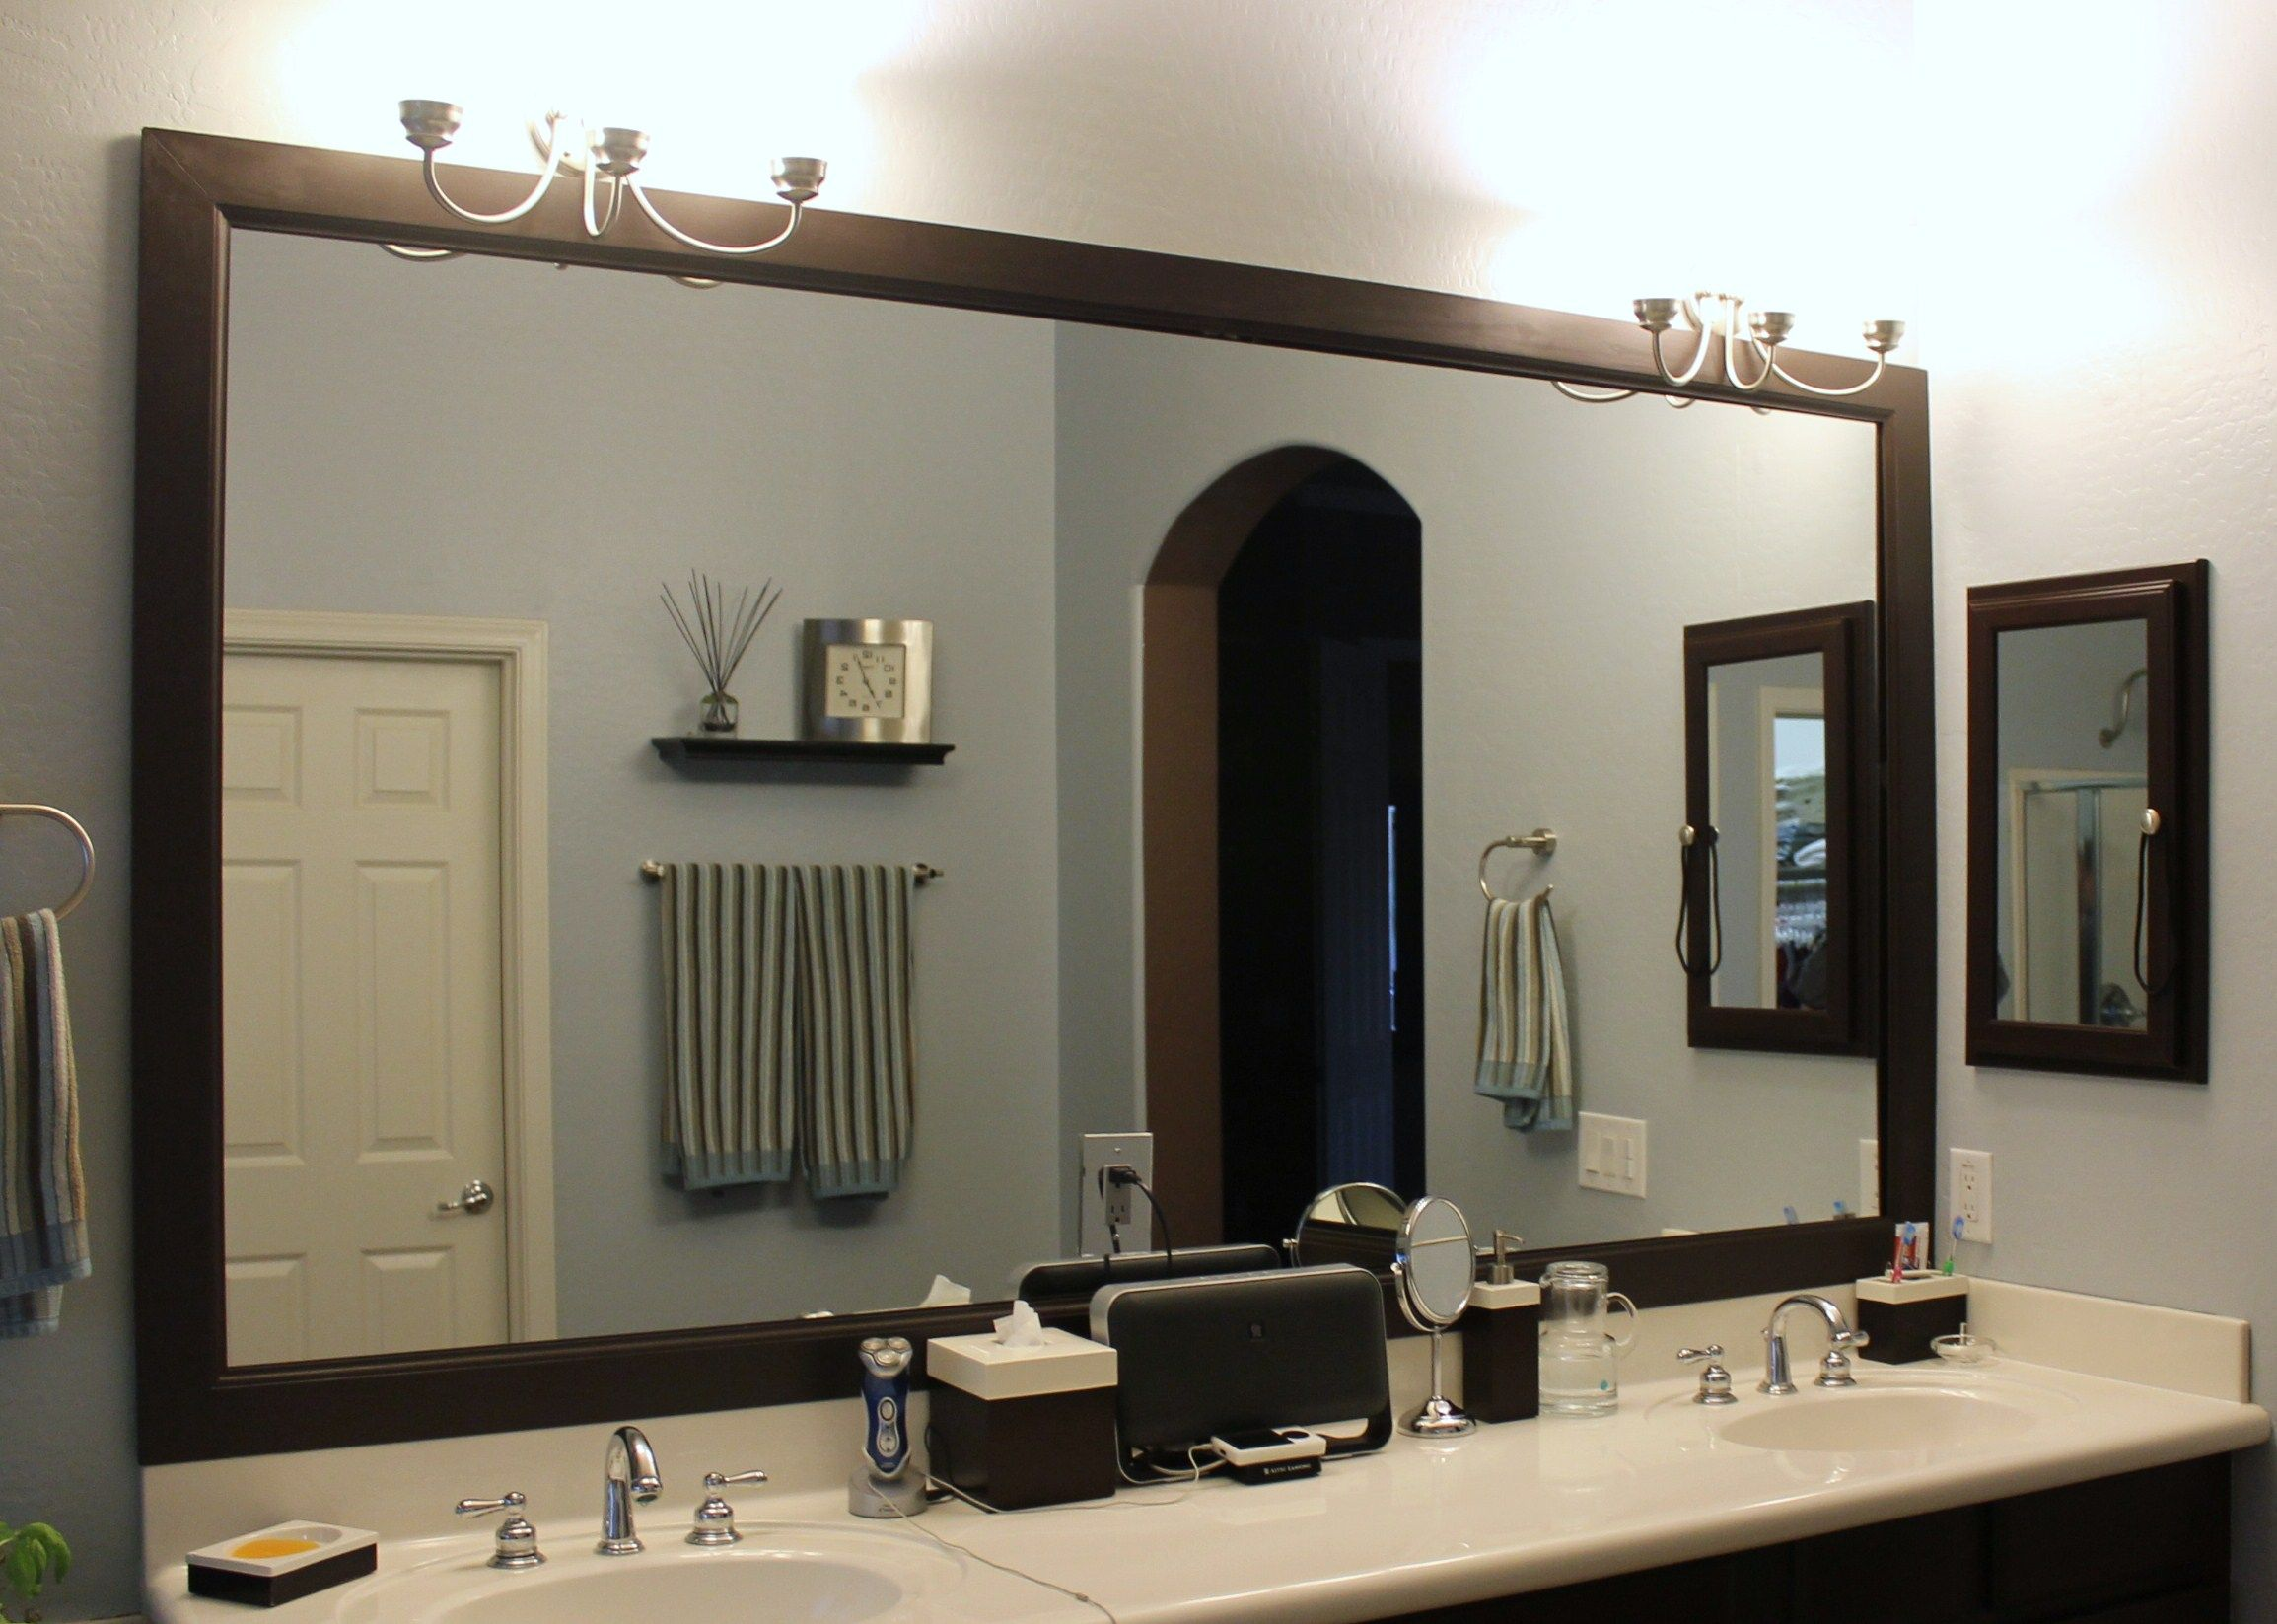 Frames For Bathroom Wall Mirrors Diy Bathroom Mirror Frame Bathroom Ideas Pinterest